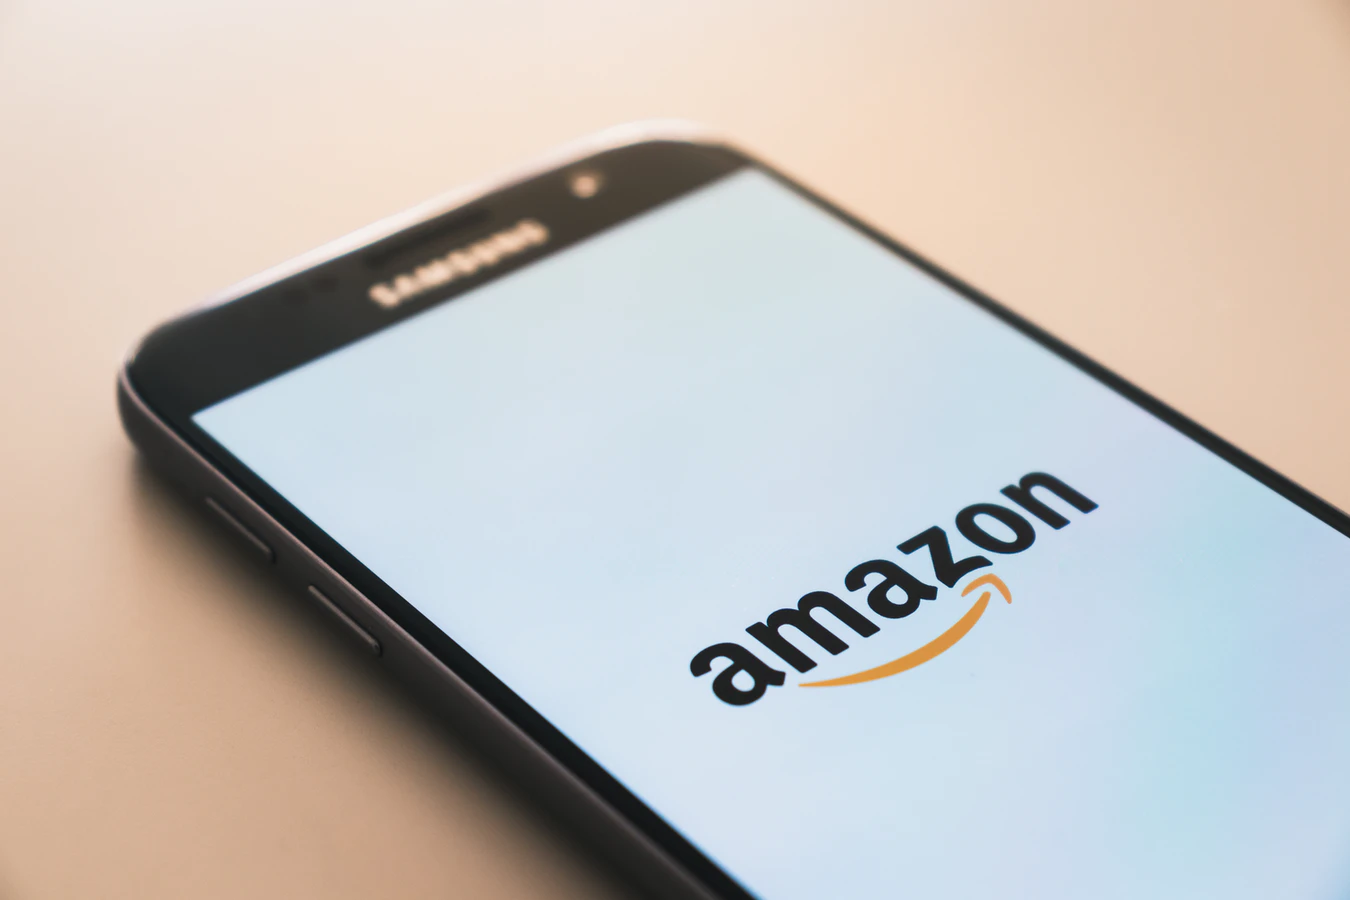 a smartphone with the Amazon introduction screen on it